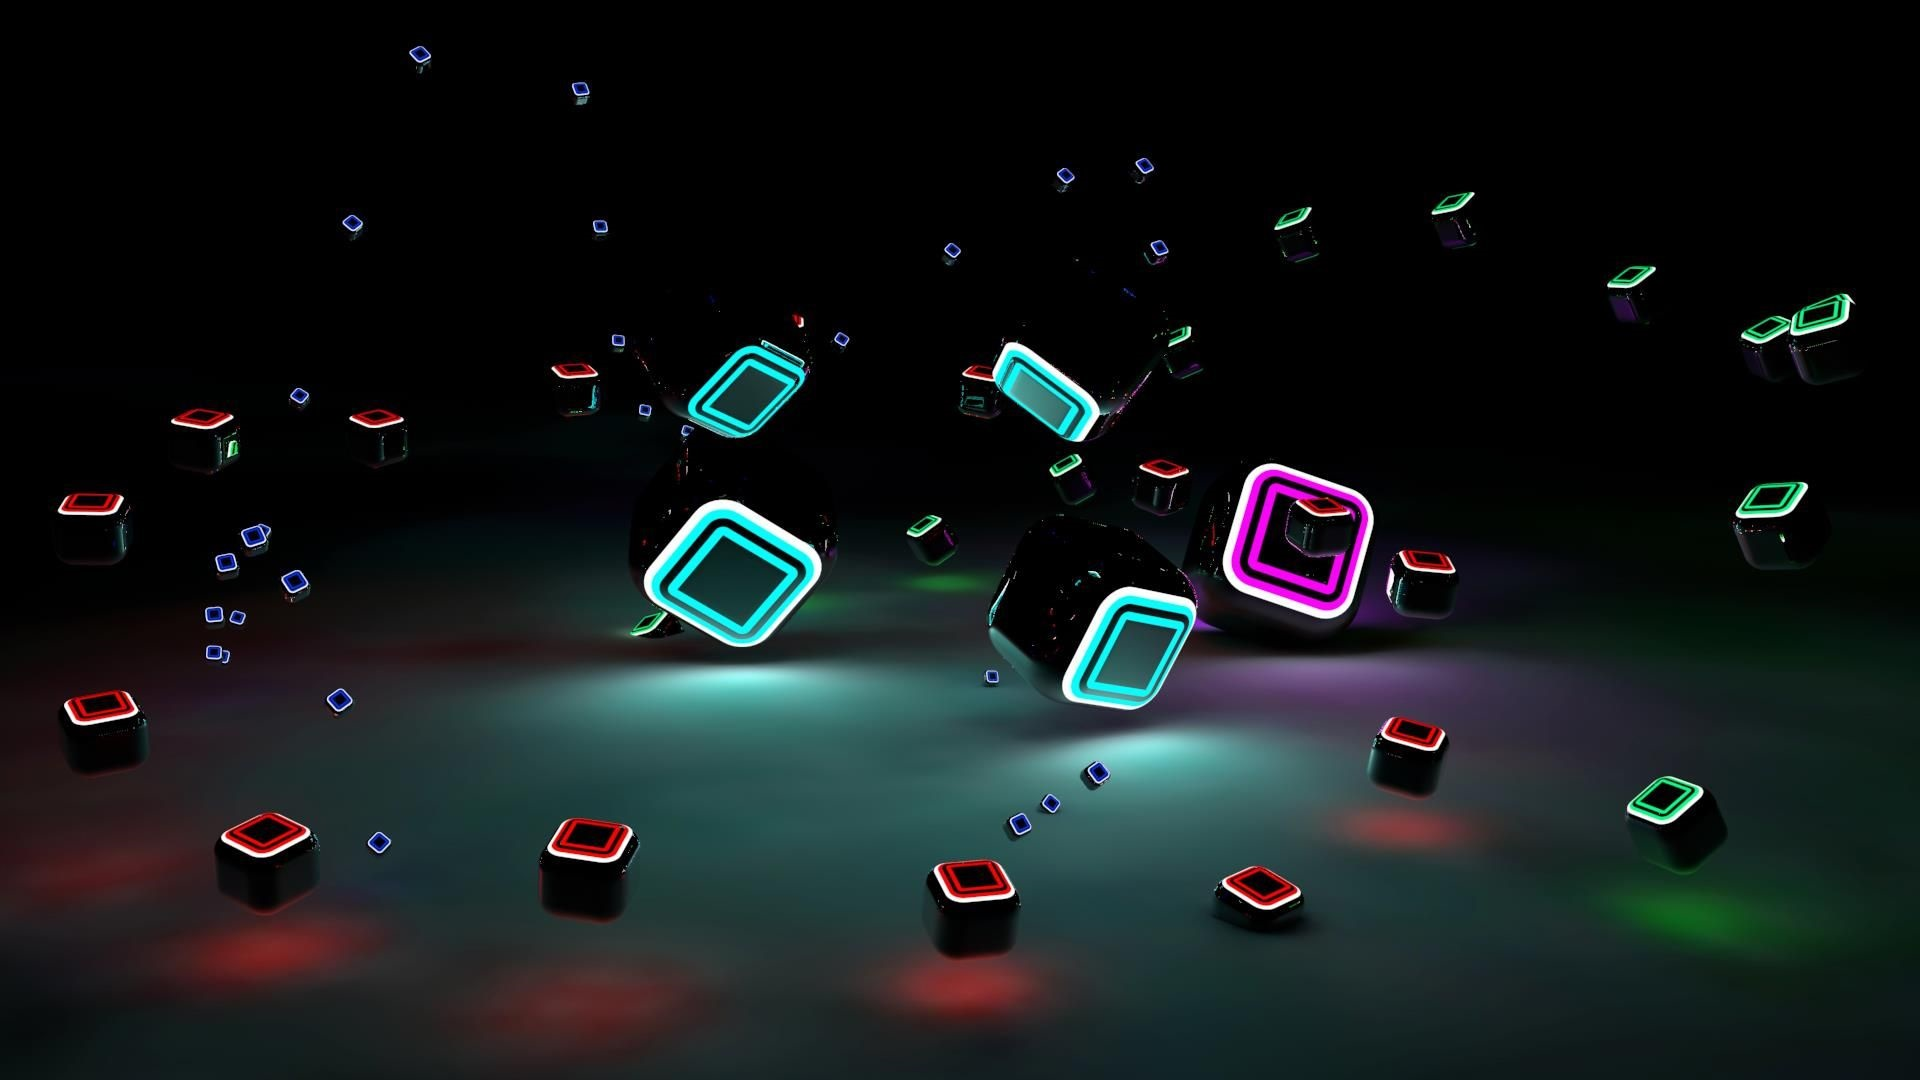 Neon wallpaper 15 awesome Collection 1920x1080